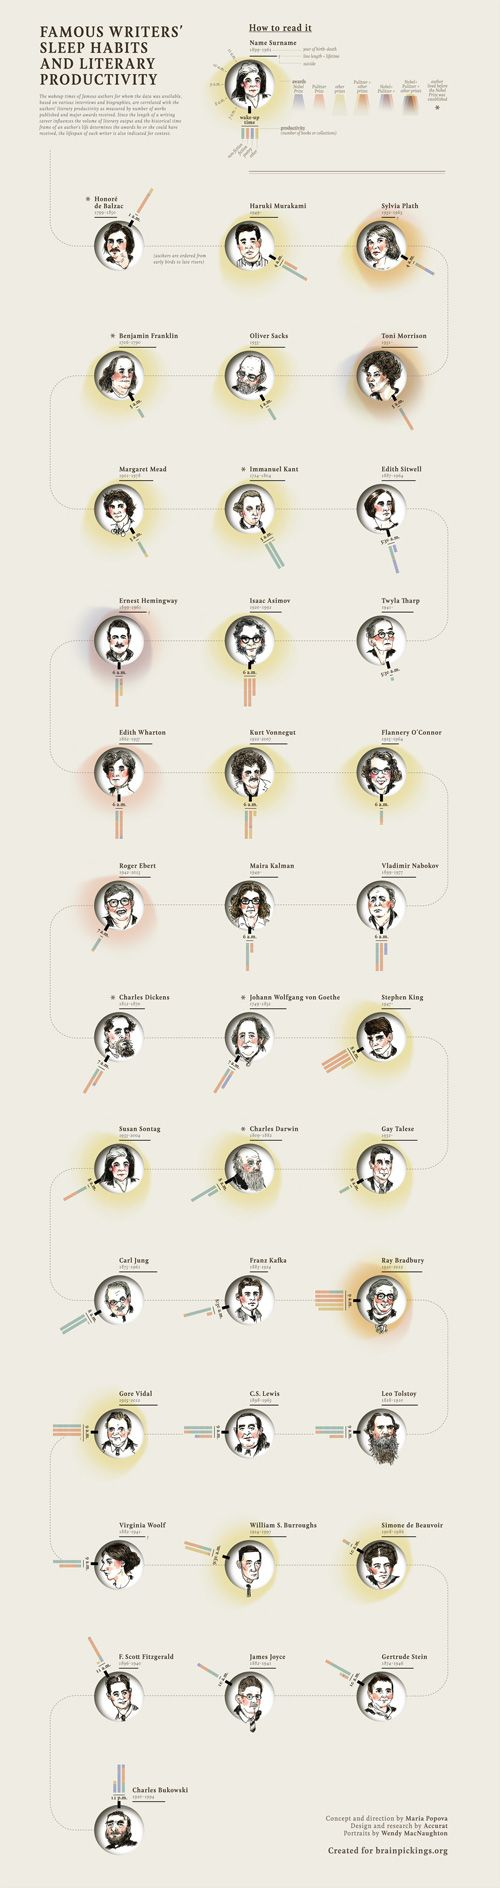 Famous Writers' Sleep Habits and Literary Productivity